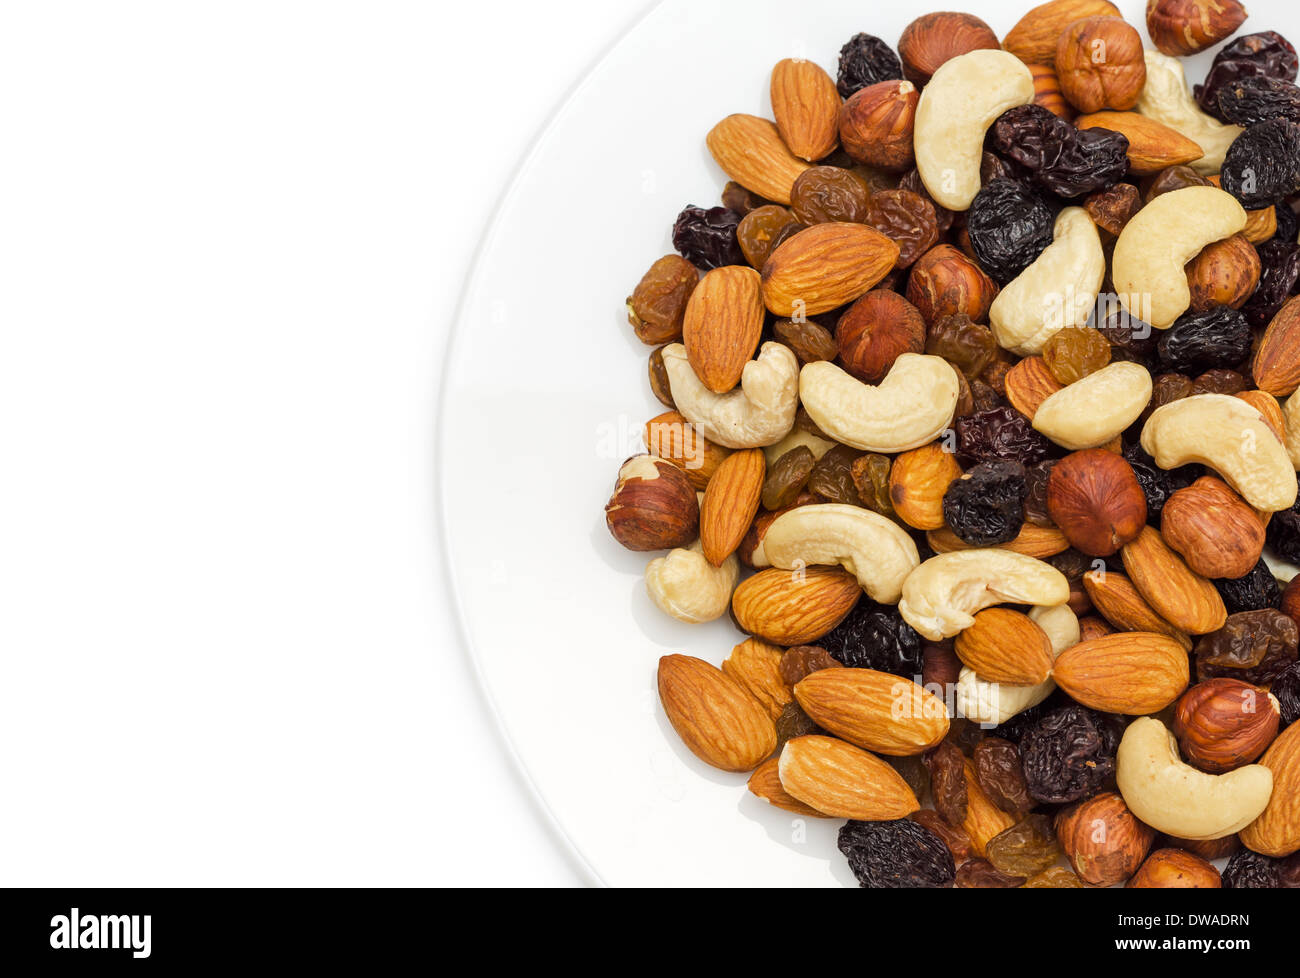 Mixed nuts and dry fruits in plate isolated on white background close-up - Stock Image